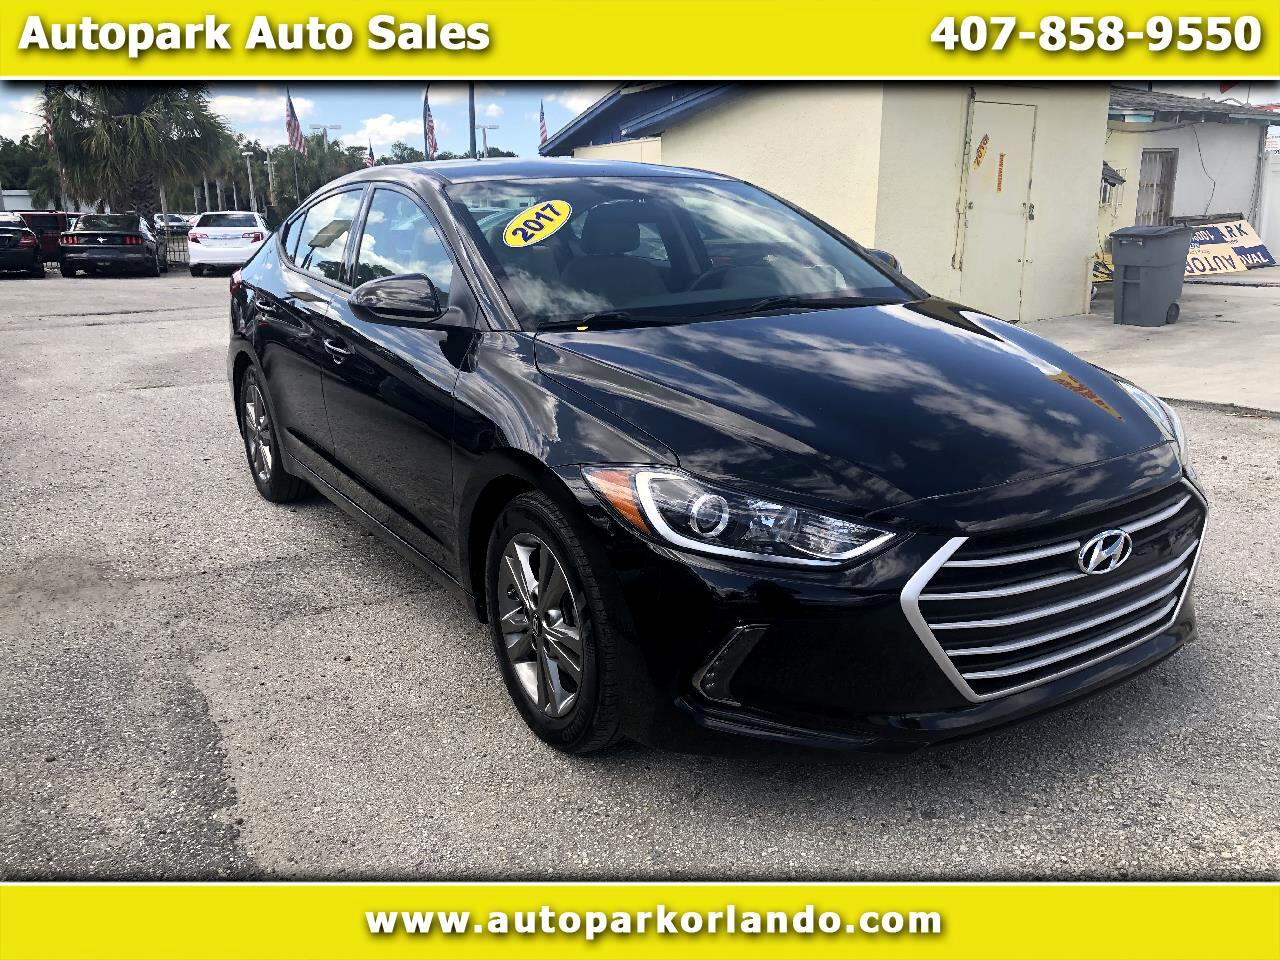 Hyundai Elantra 4dr Sdn Auto Value Edition (Alabama Plant) 2017